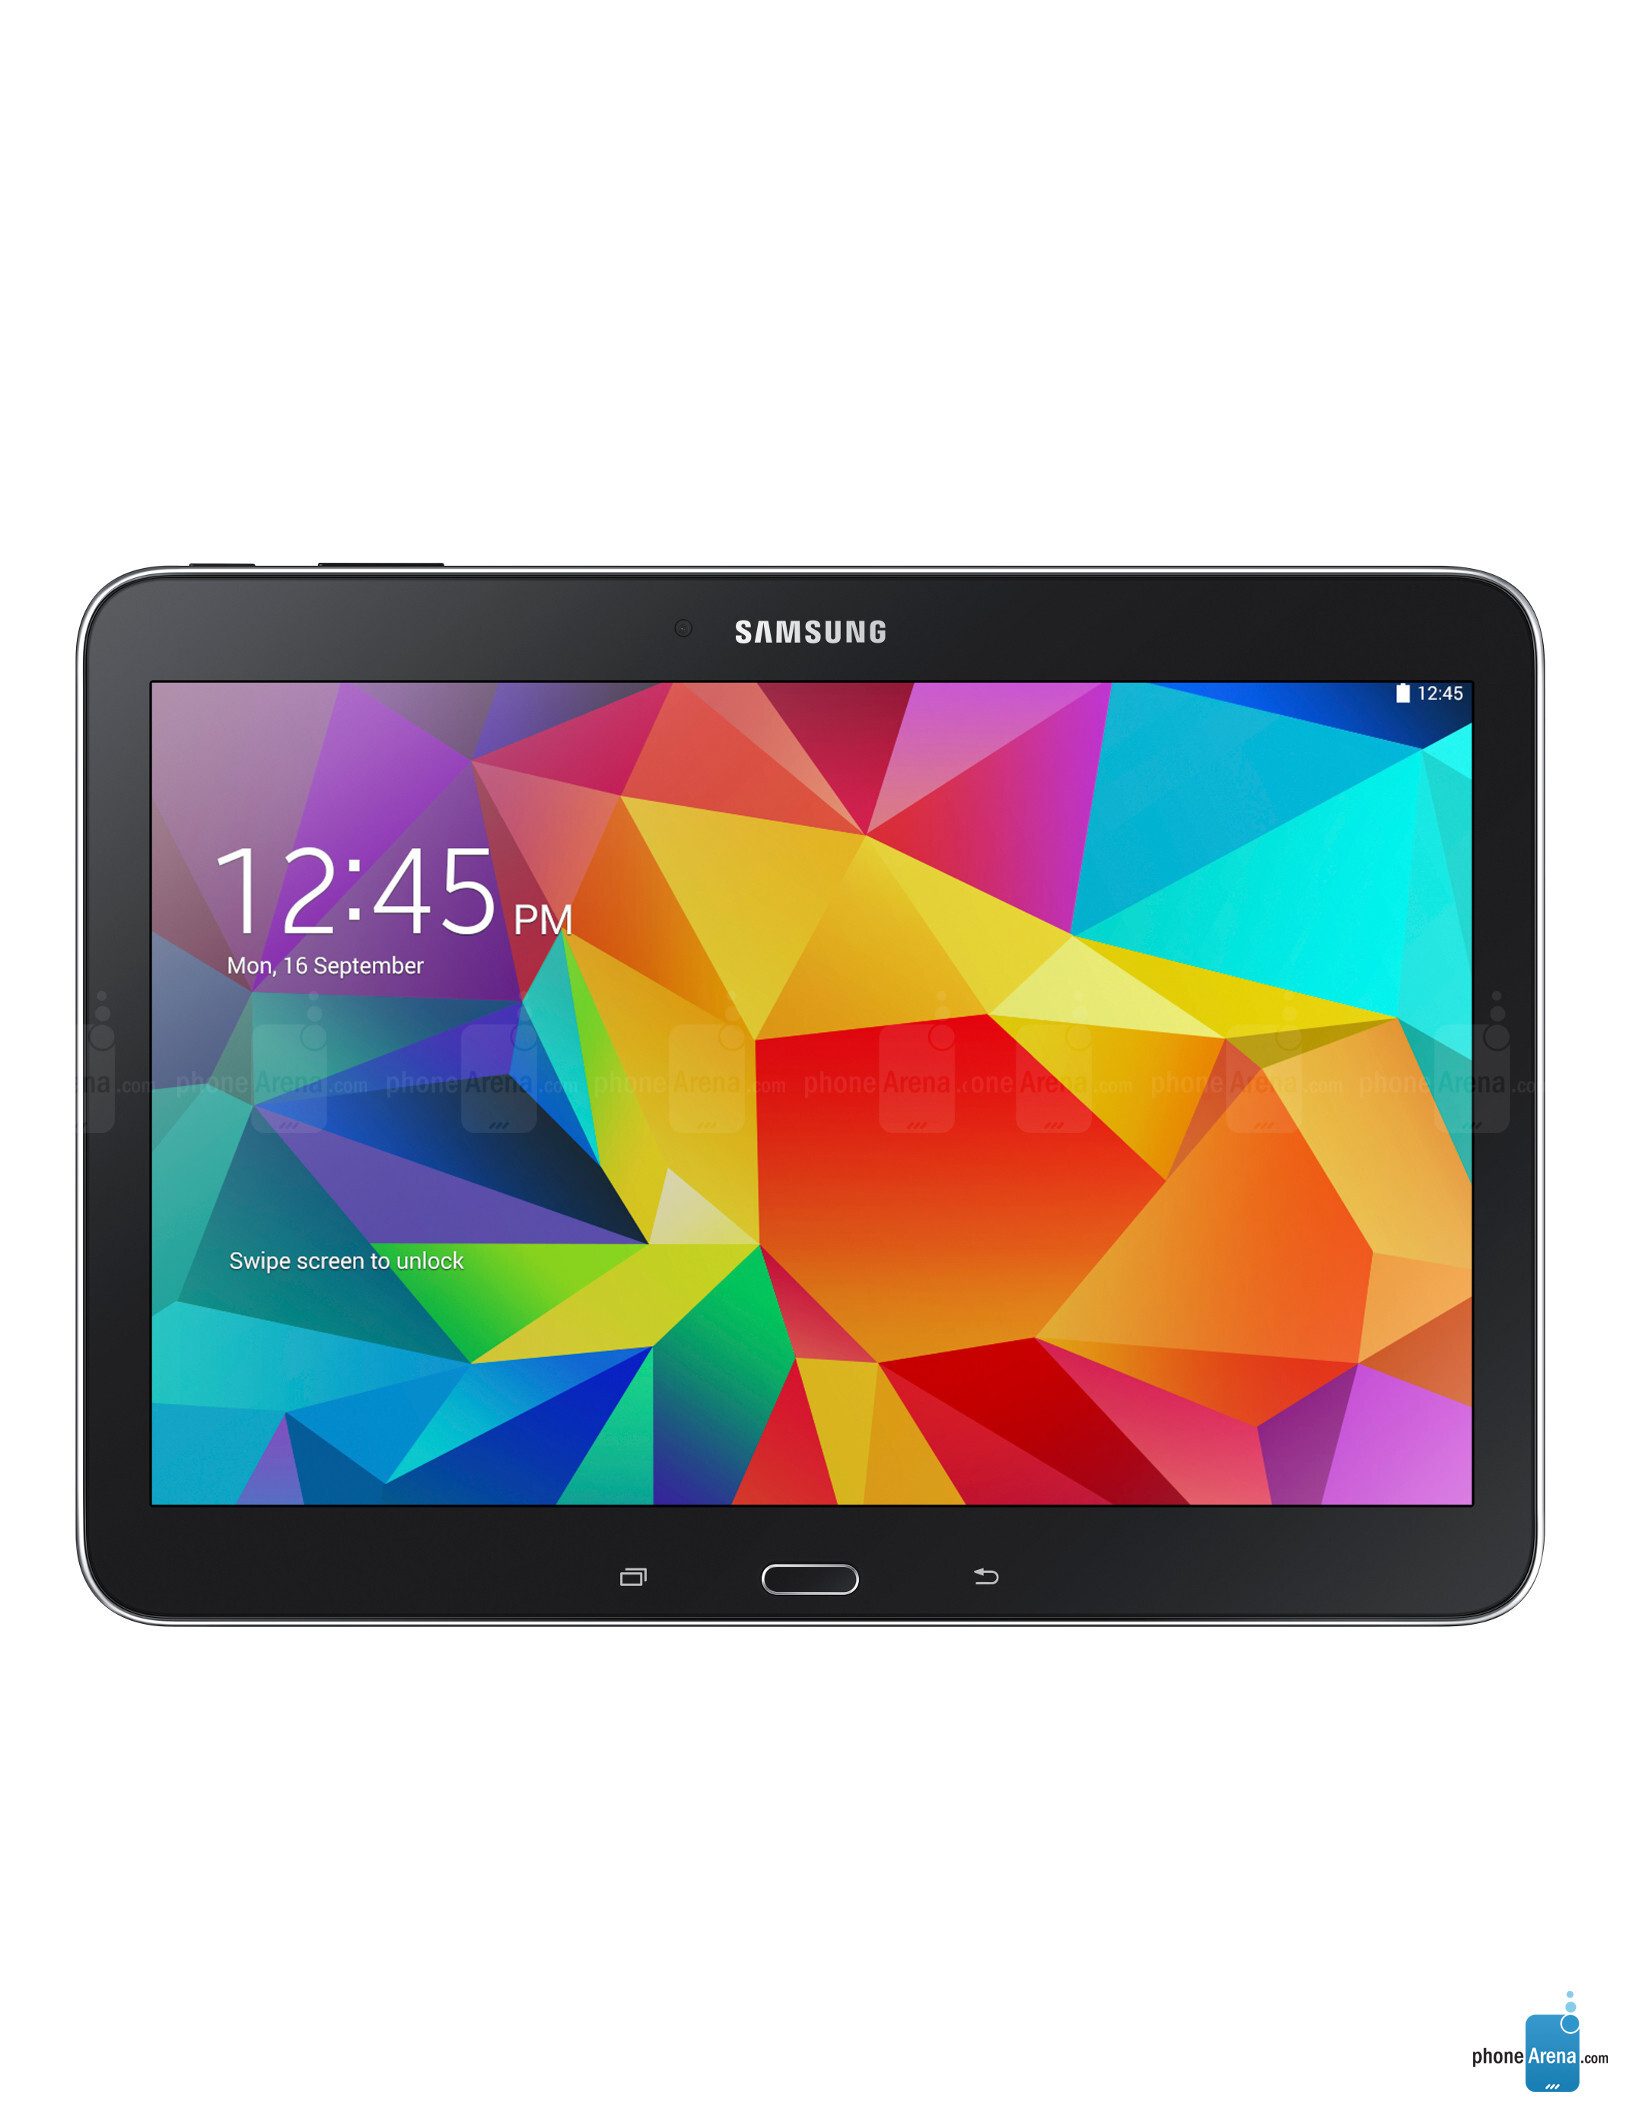 Samsung galaxy tab 4 10 1 specs for Samsung galaxy 4 tablet